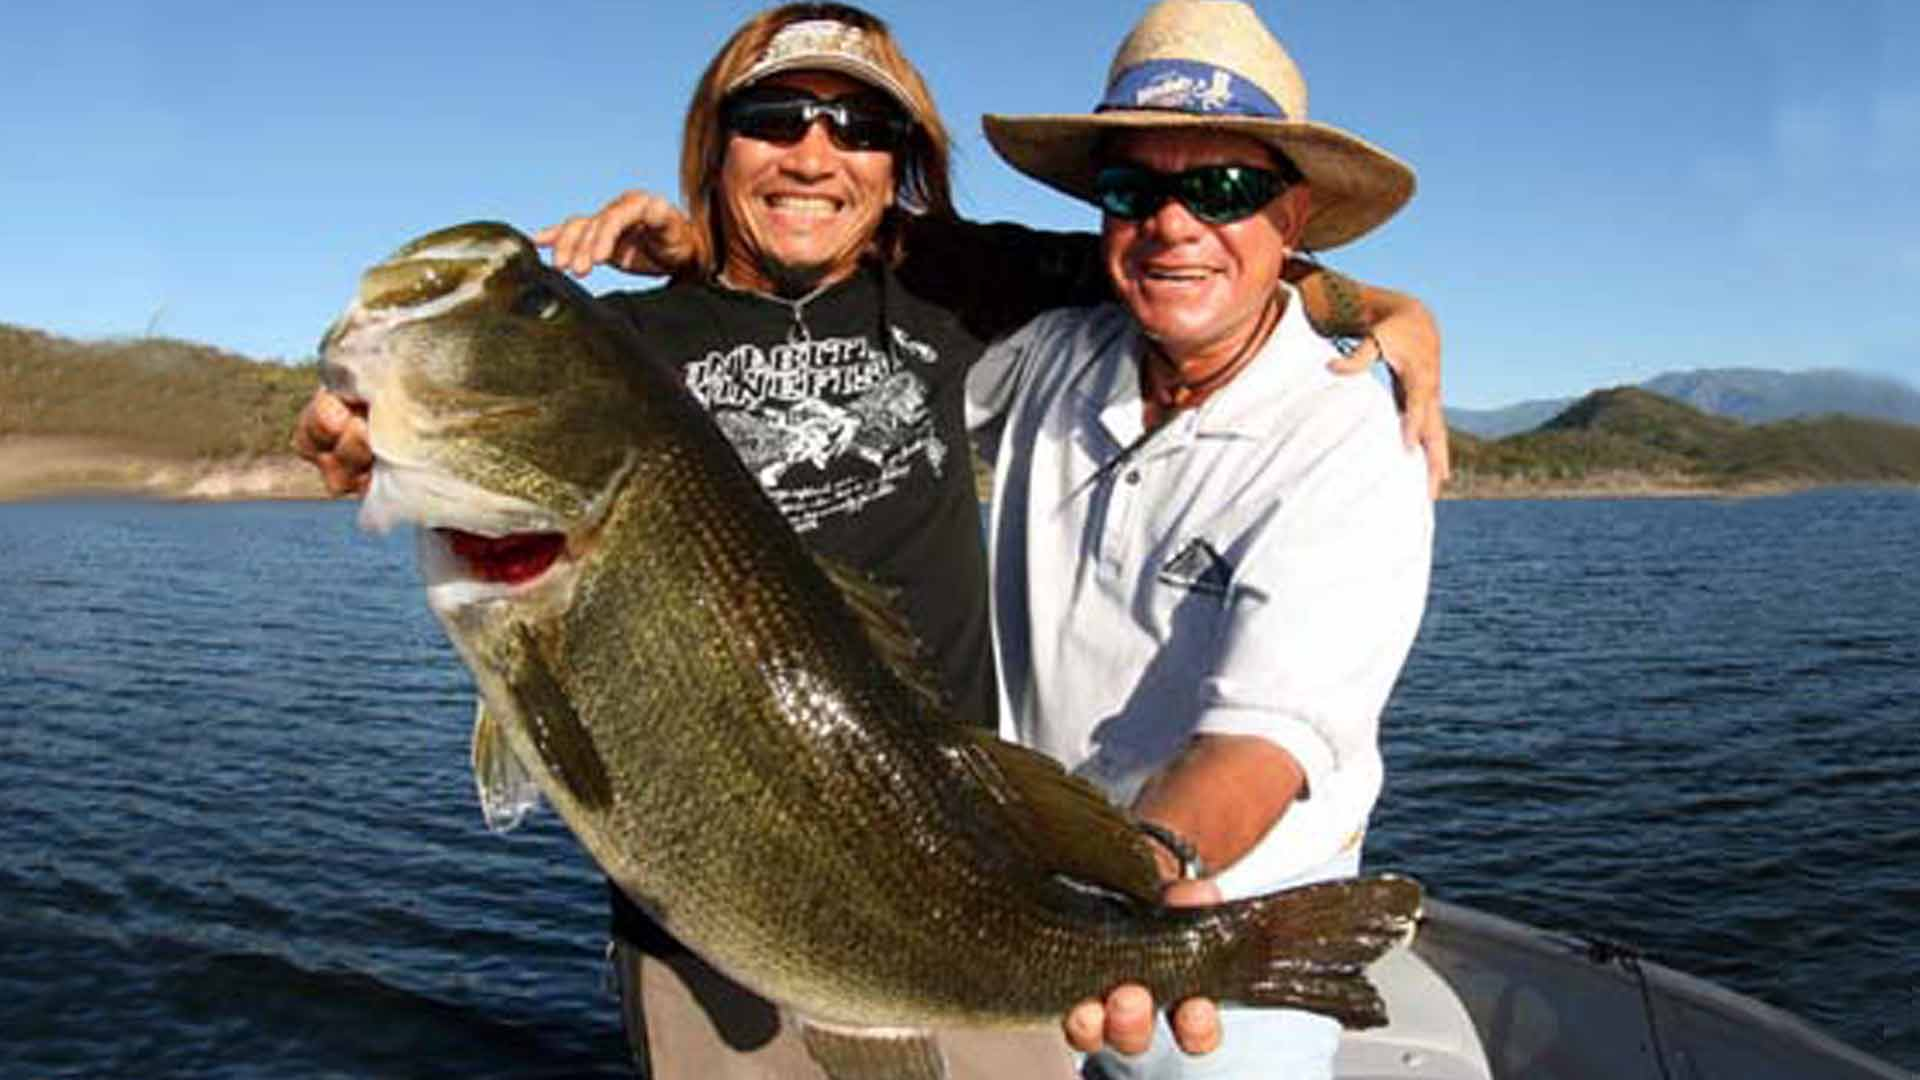 Mexico largemouth bass